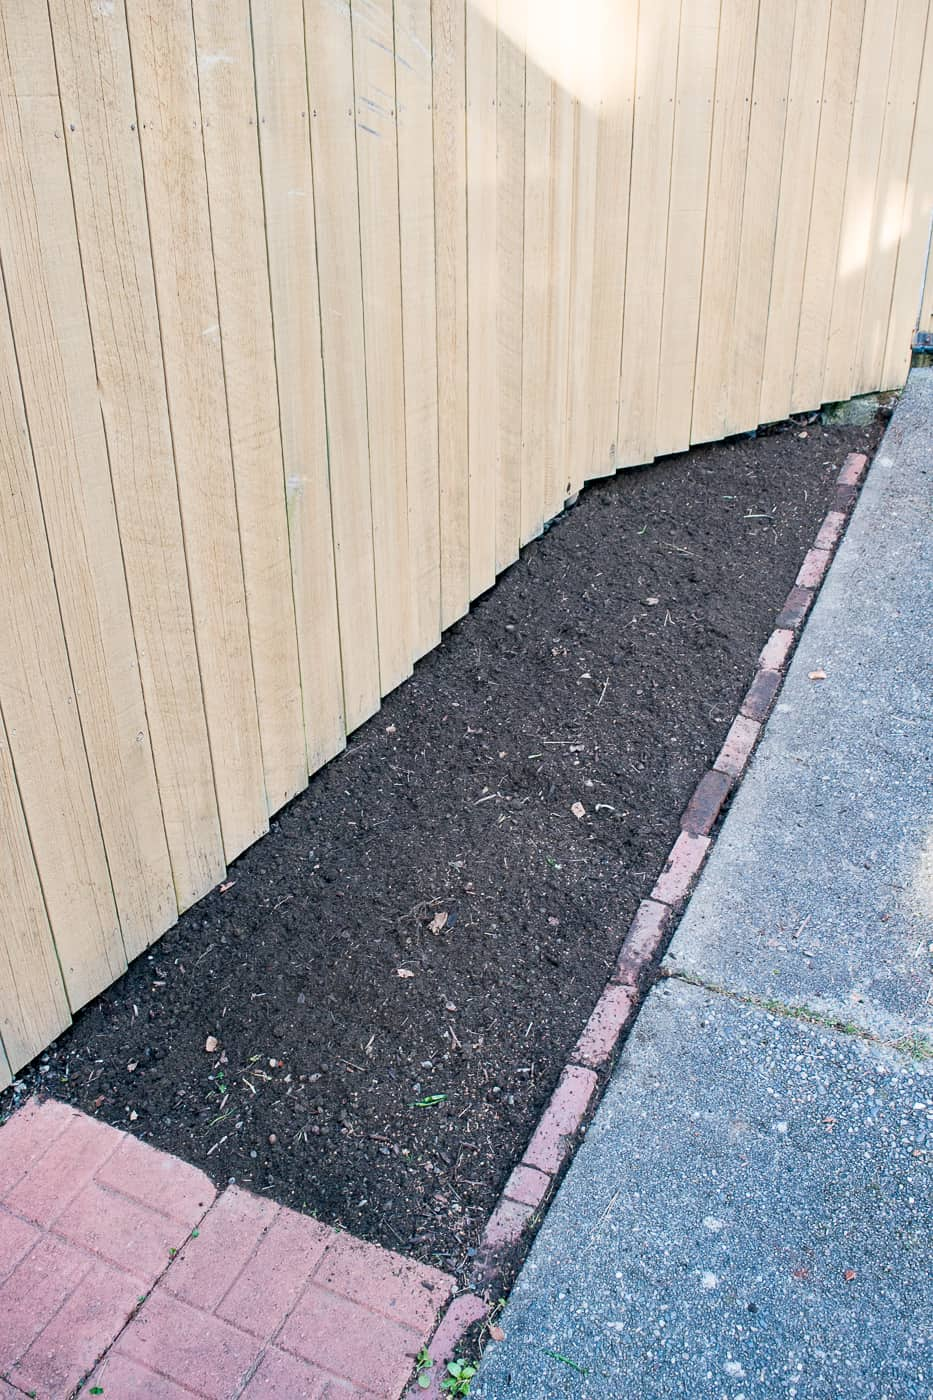 empty garden bed with bare fence next to concrete walkway lined with bricks